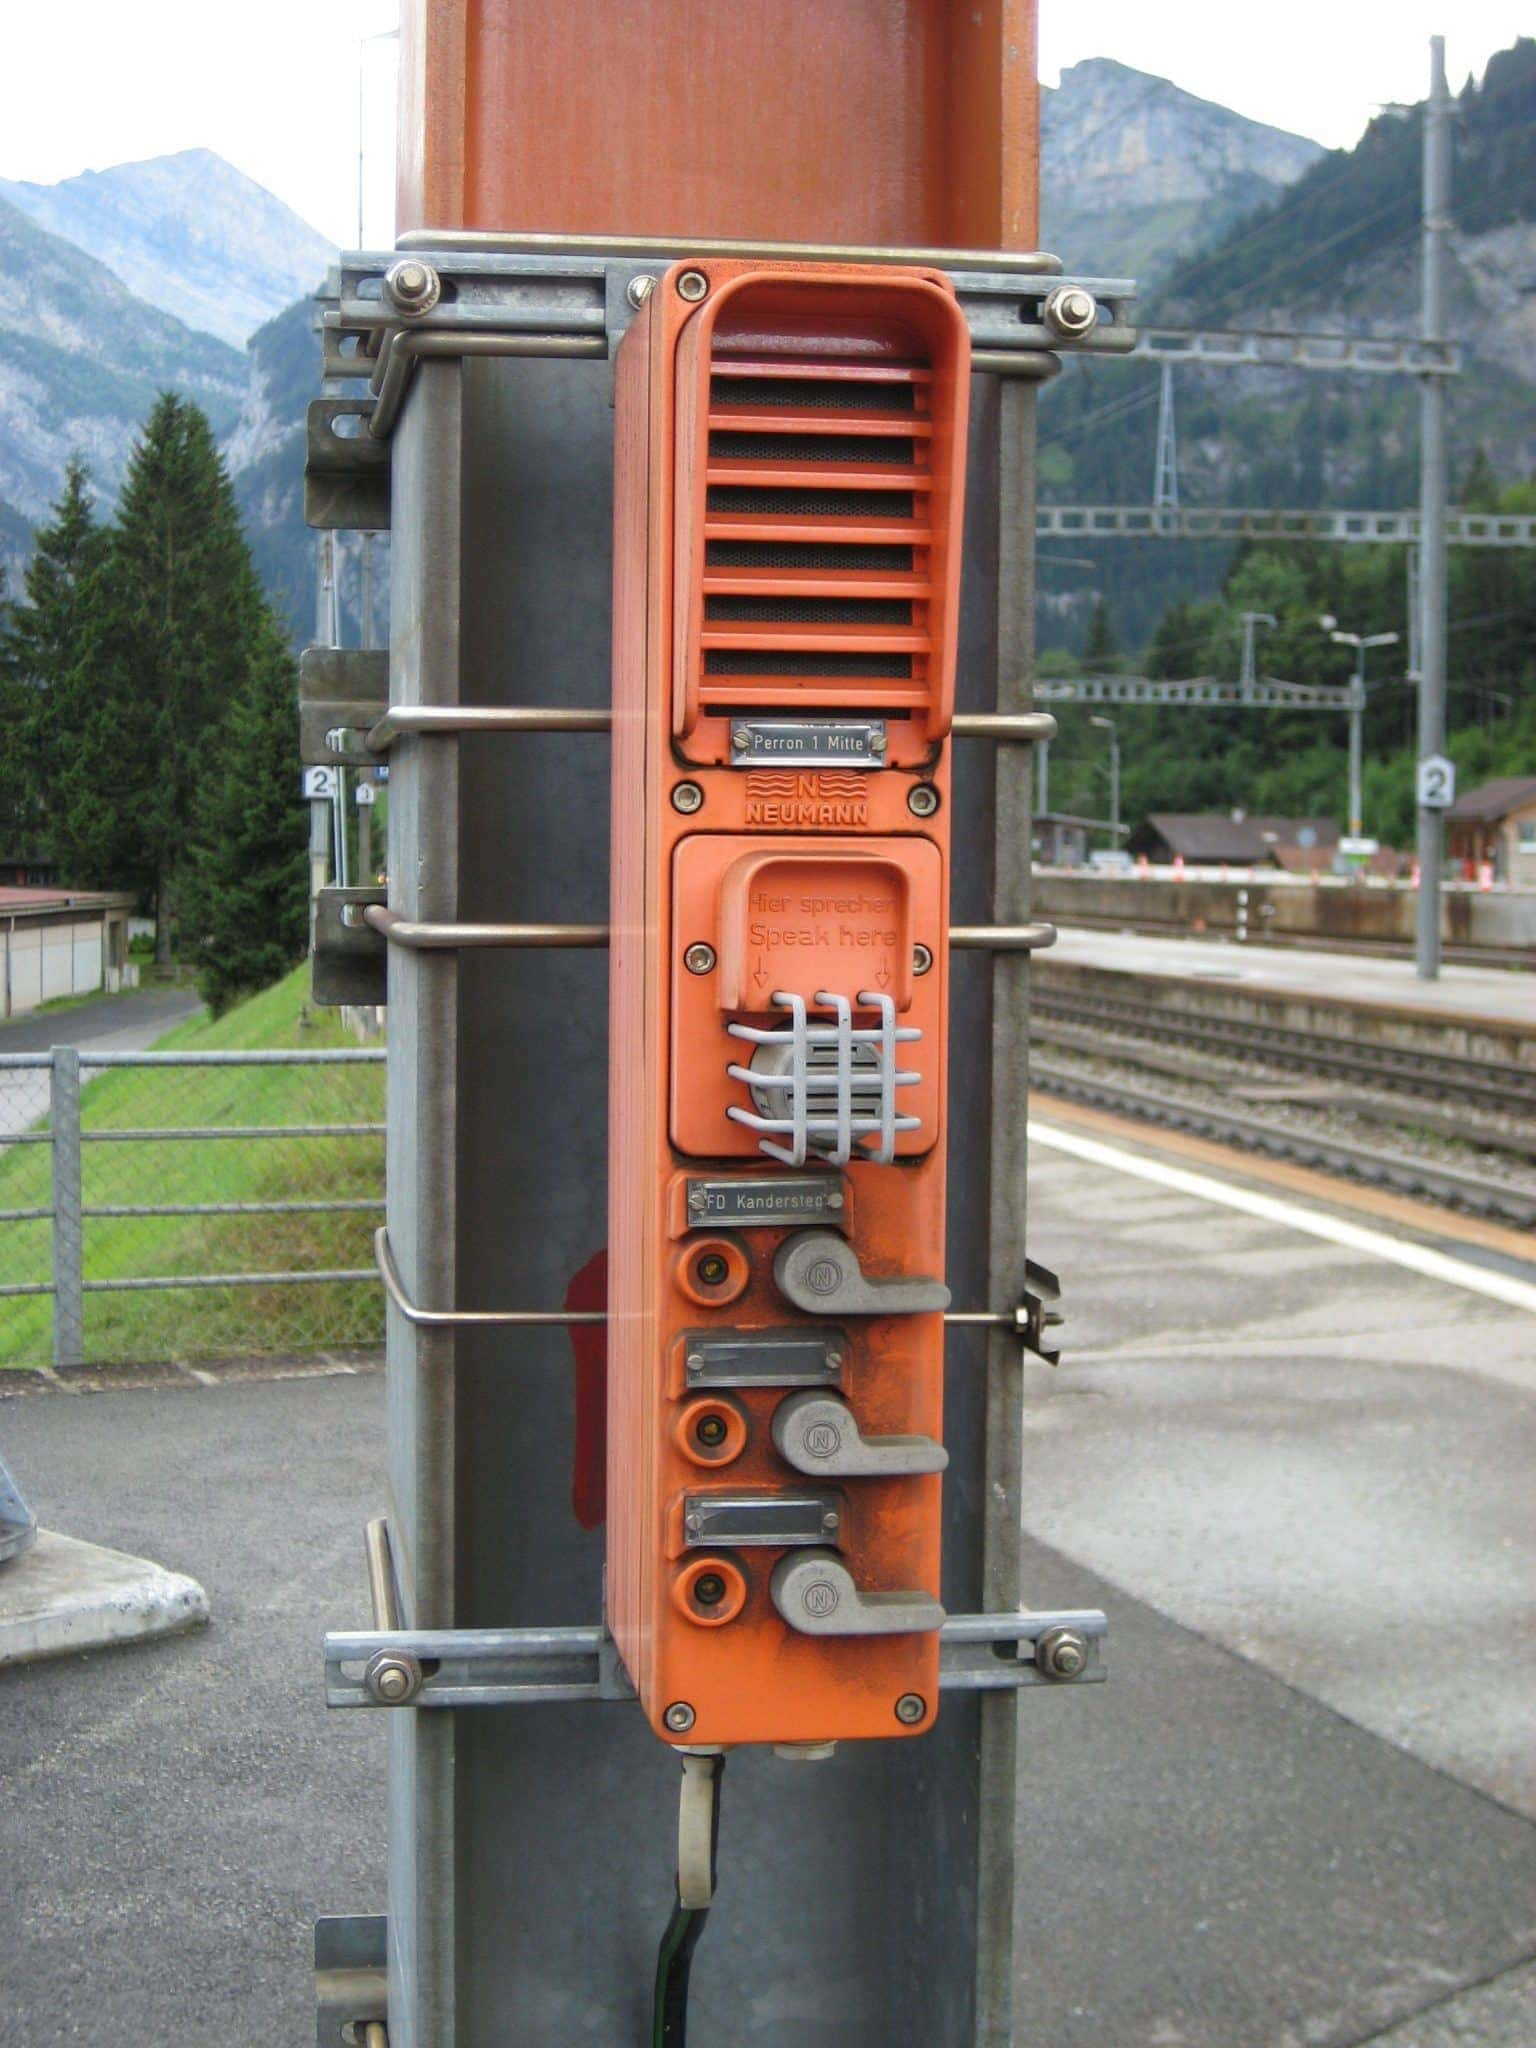 Train Intercom in Switzerland